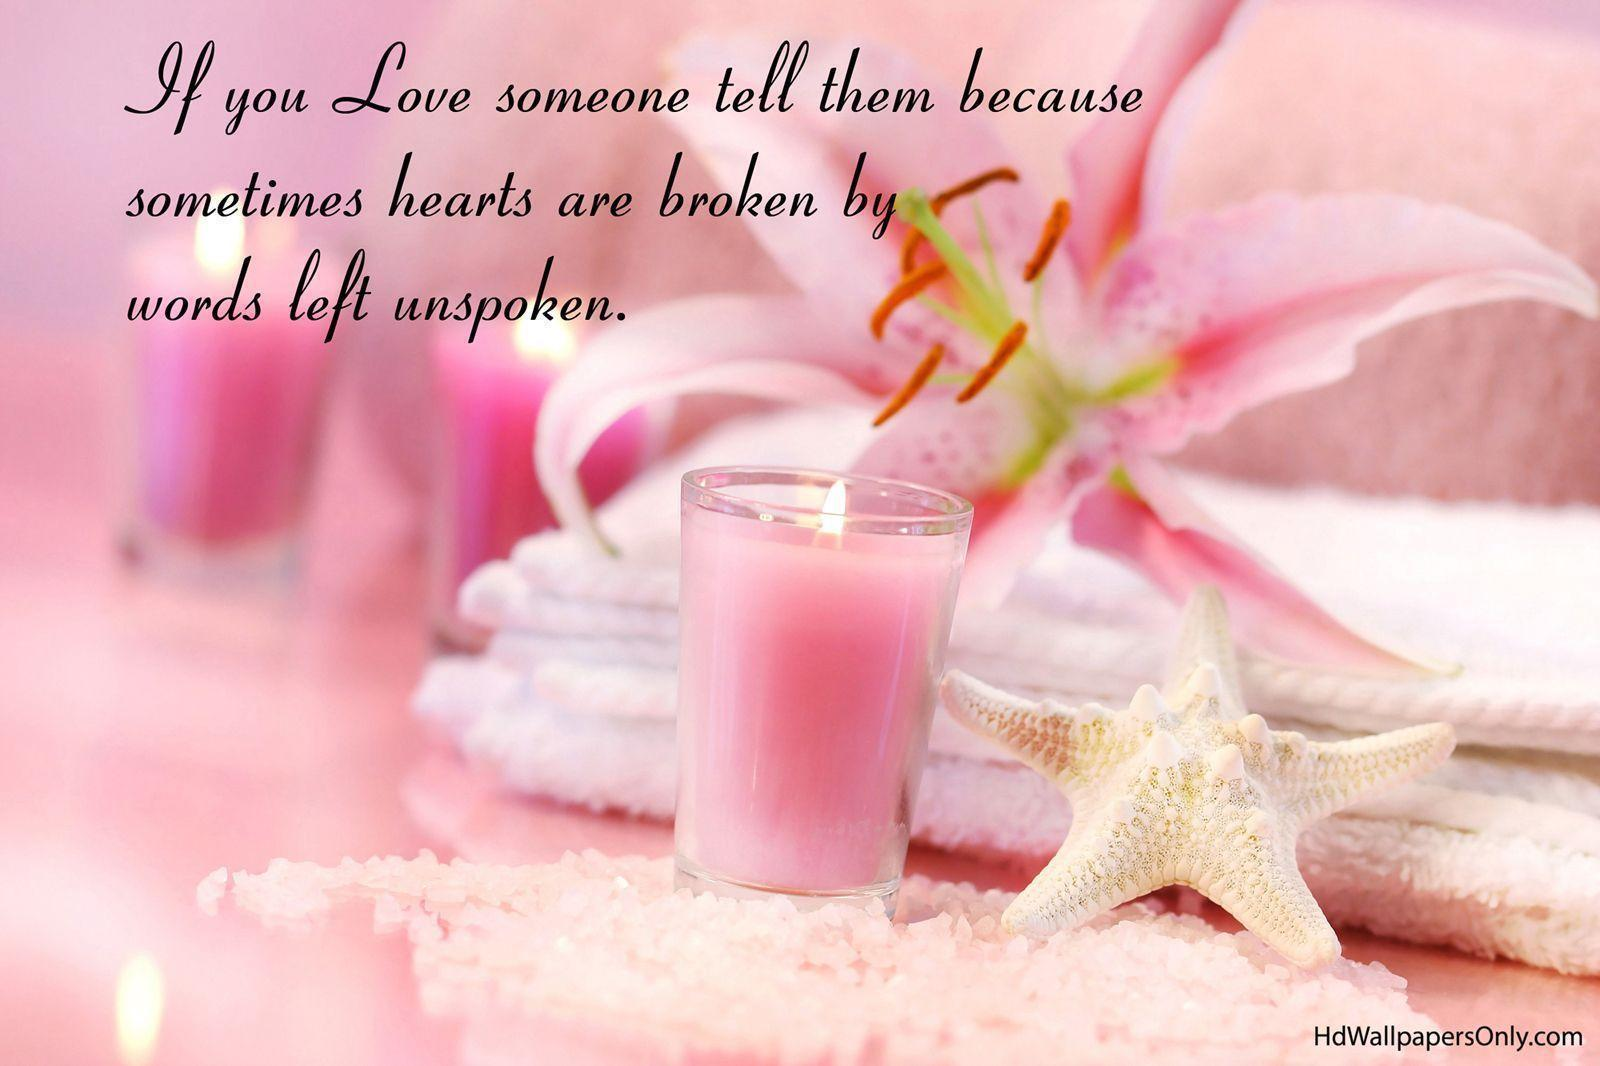 cute Love Quotes Wallpapers - Wallpaper cave